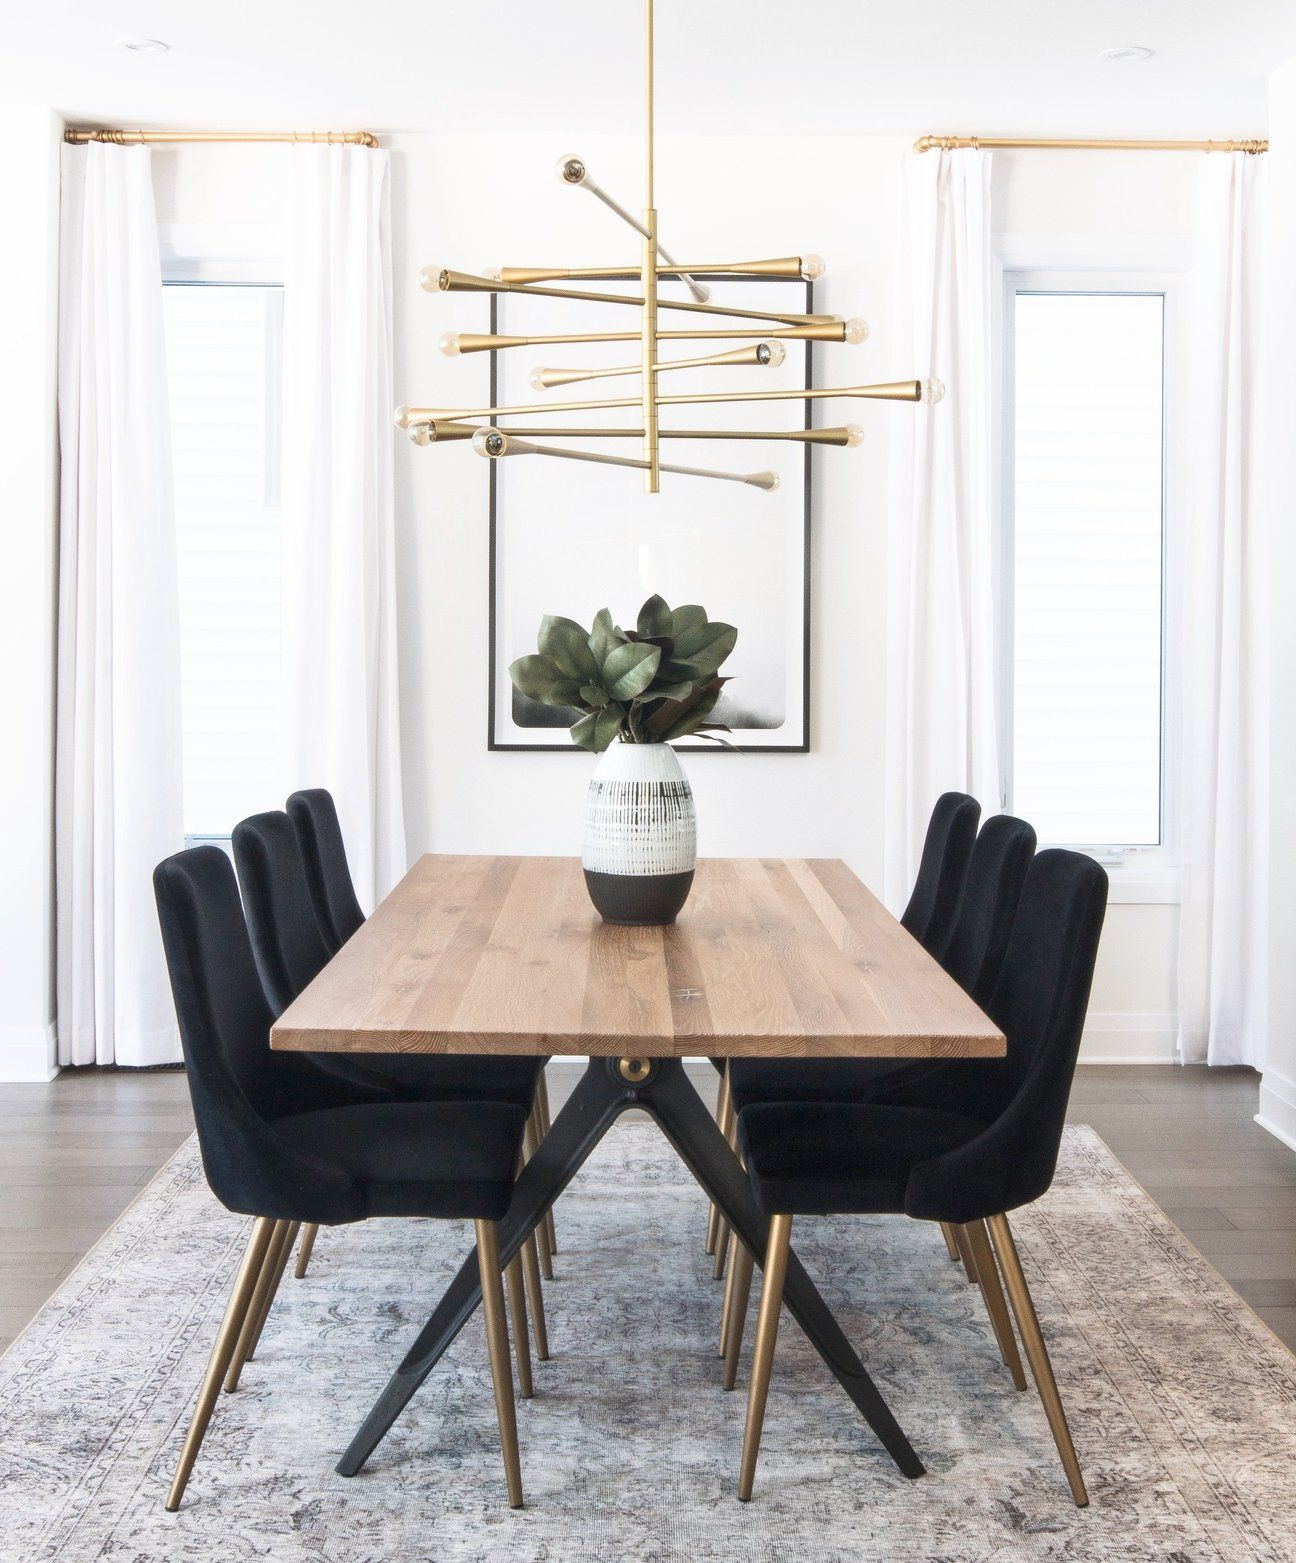 Casual Dining Room Decor Ideas: Pin By Essential Home USA On Dining Room Inspiration